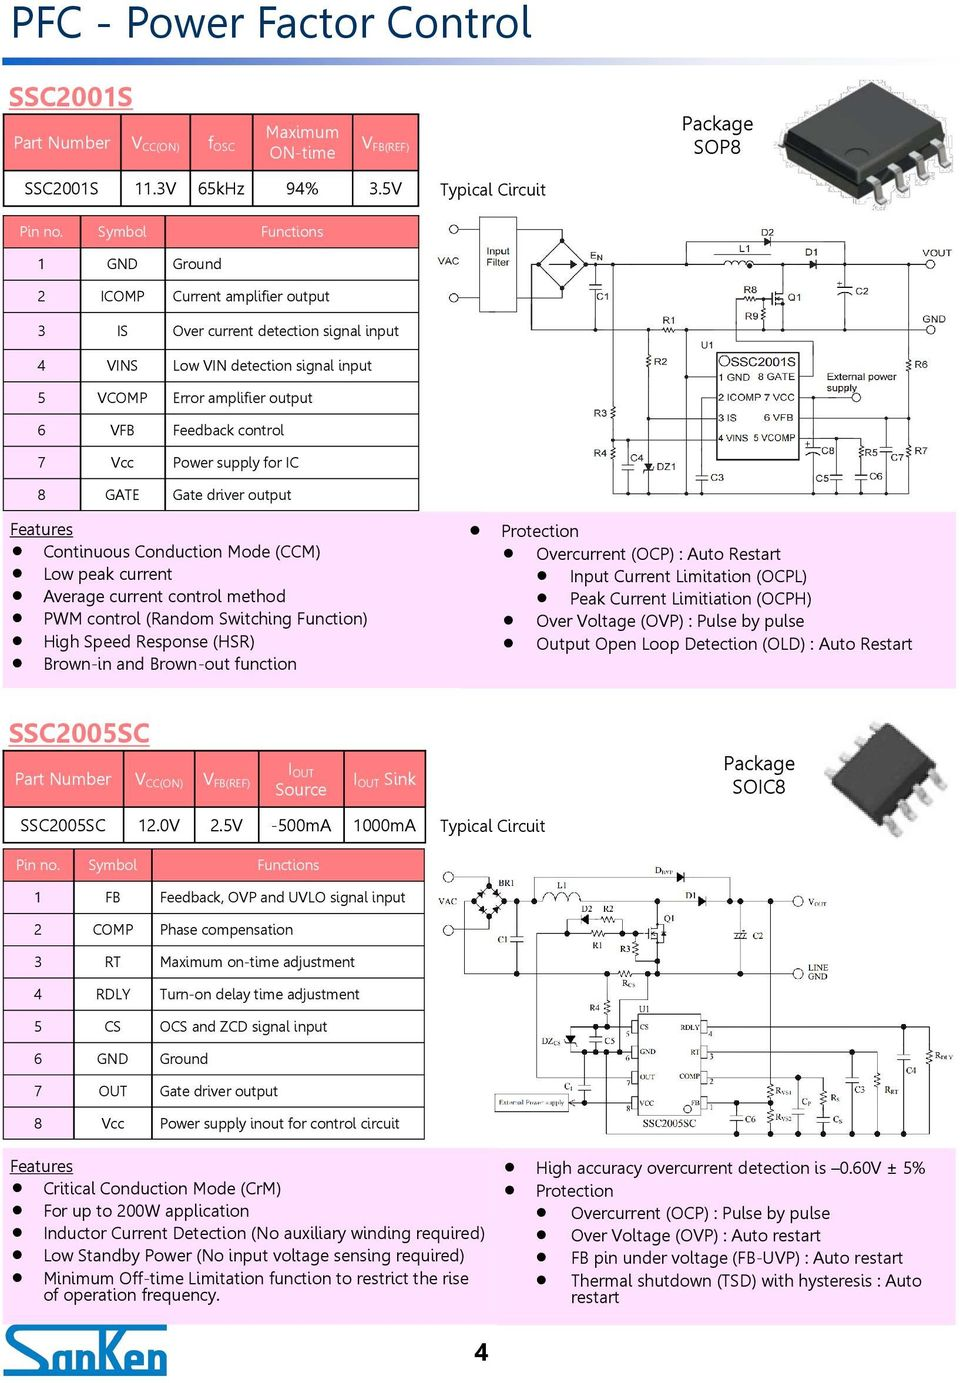 Ac Dc Power Management Devices Product Guide Control Ics With 12v Switching Car Psu By Uc3843 Circuit Wiring Diagrams Vcc Supply For Ic 8 Gate Driver Output Continuous Conduction Mode Ccm